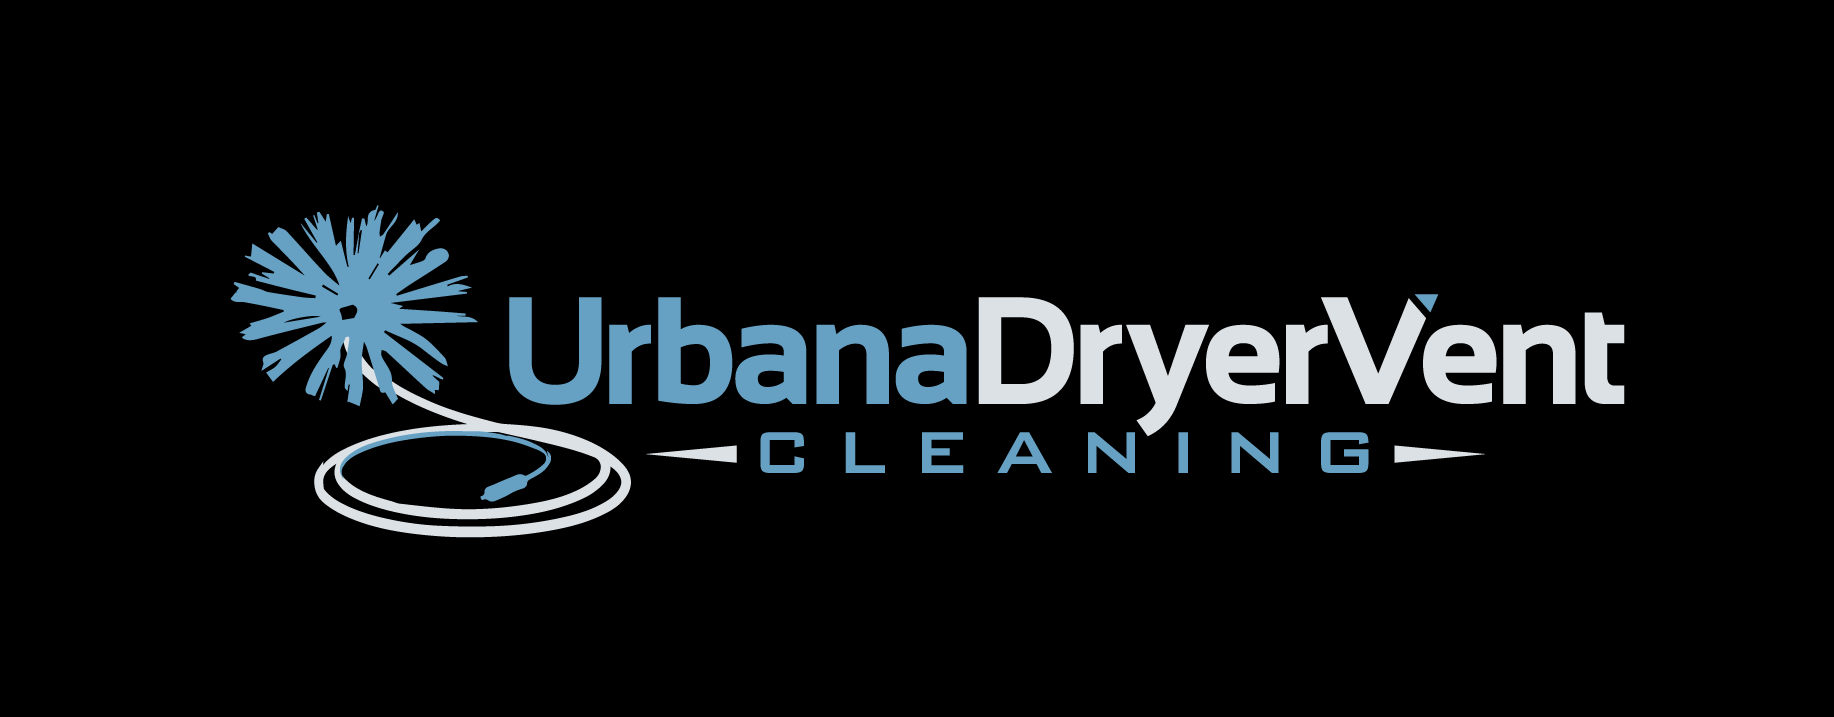 Urbana Dryer Vent Cleaning